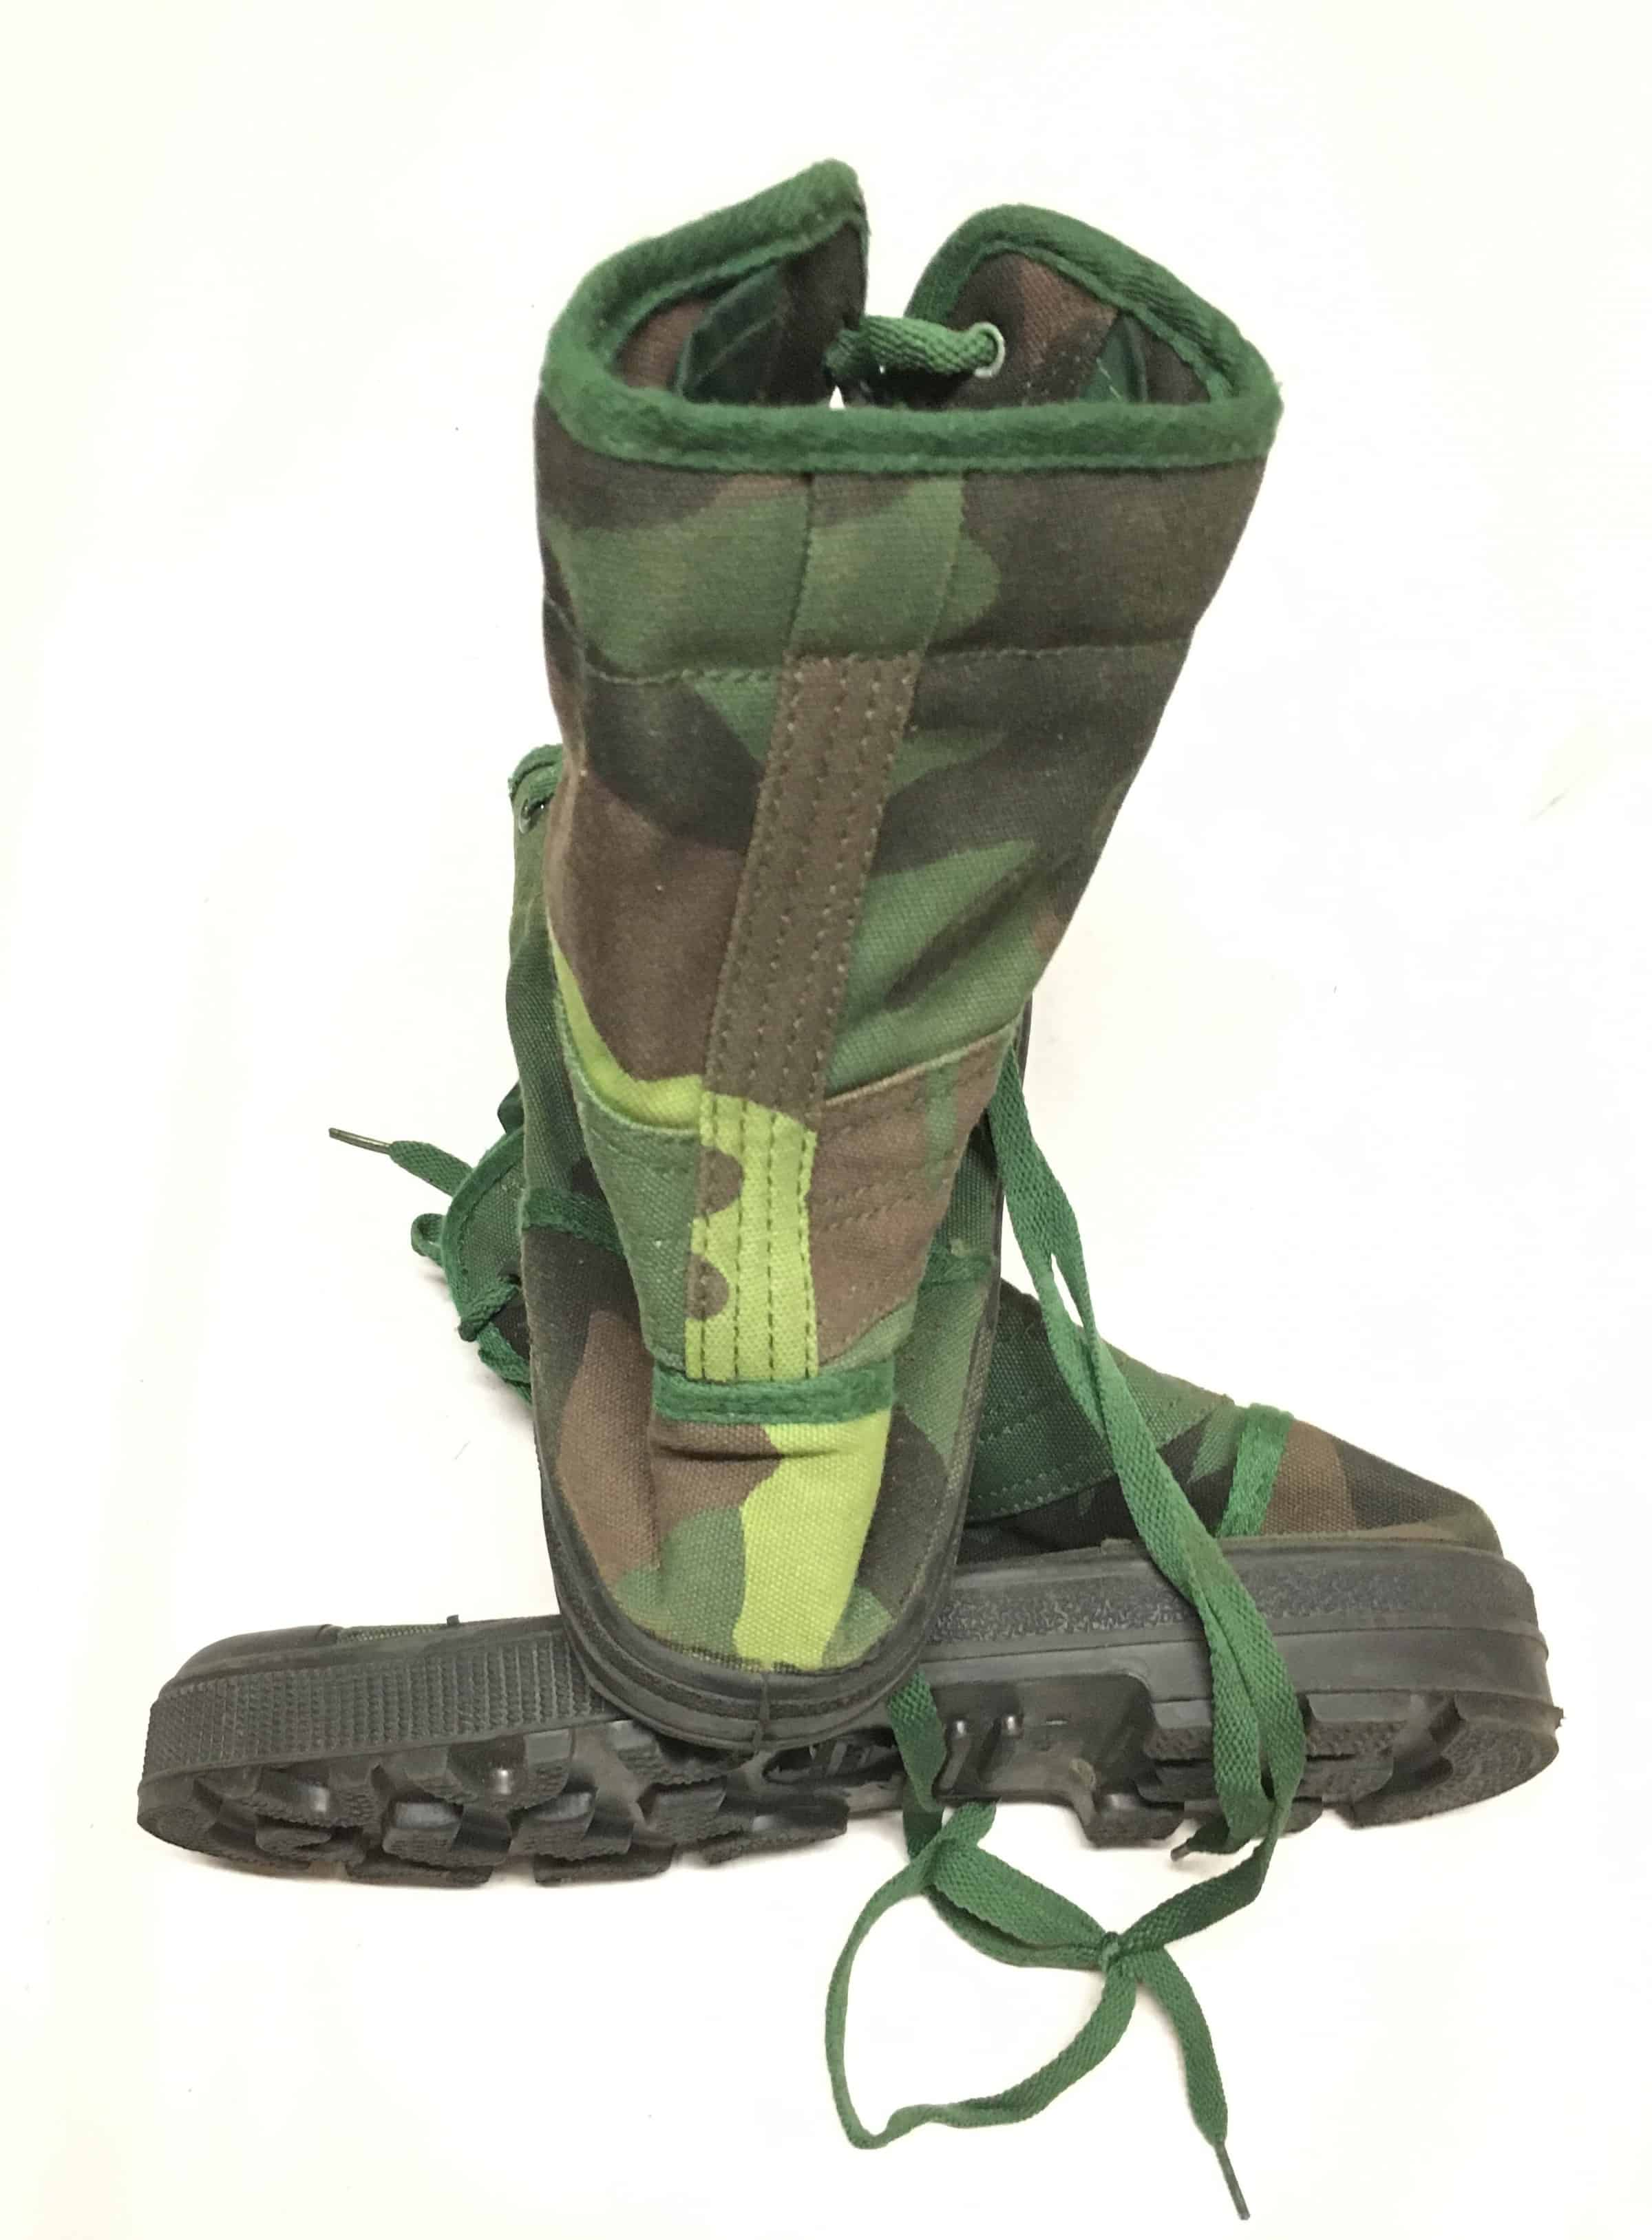 Pavn Camouflage Jungle Boots Enemy Militaria